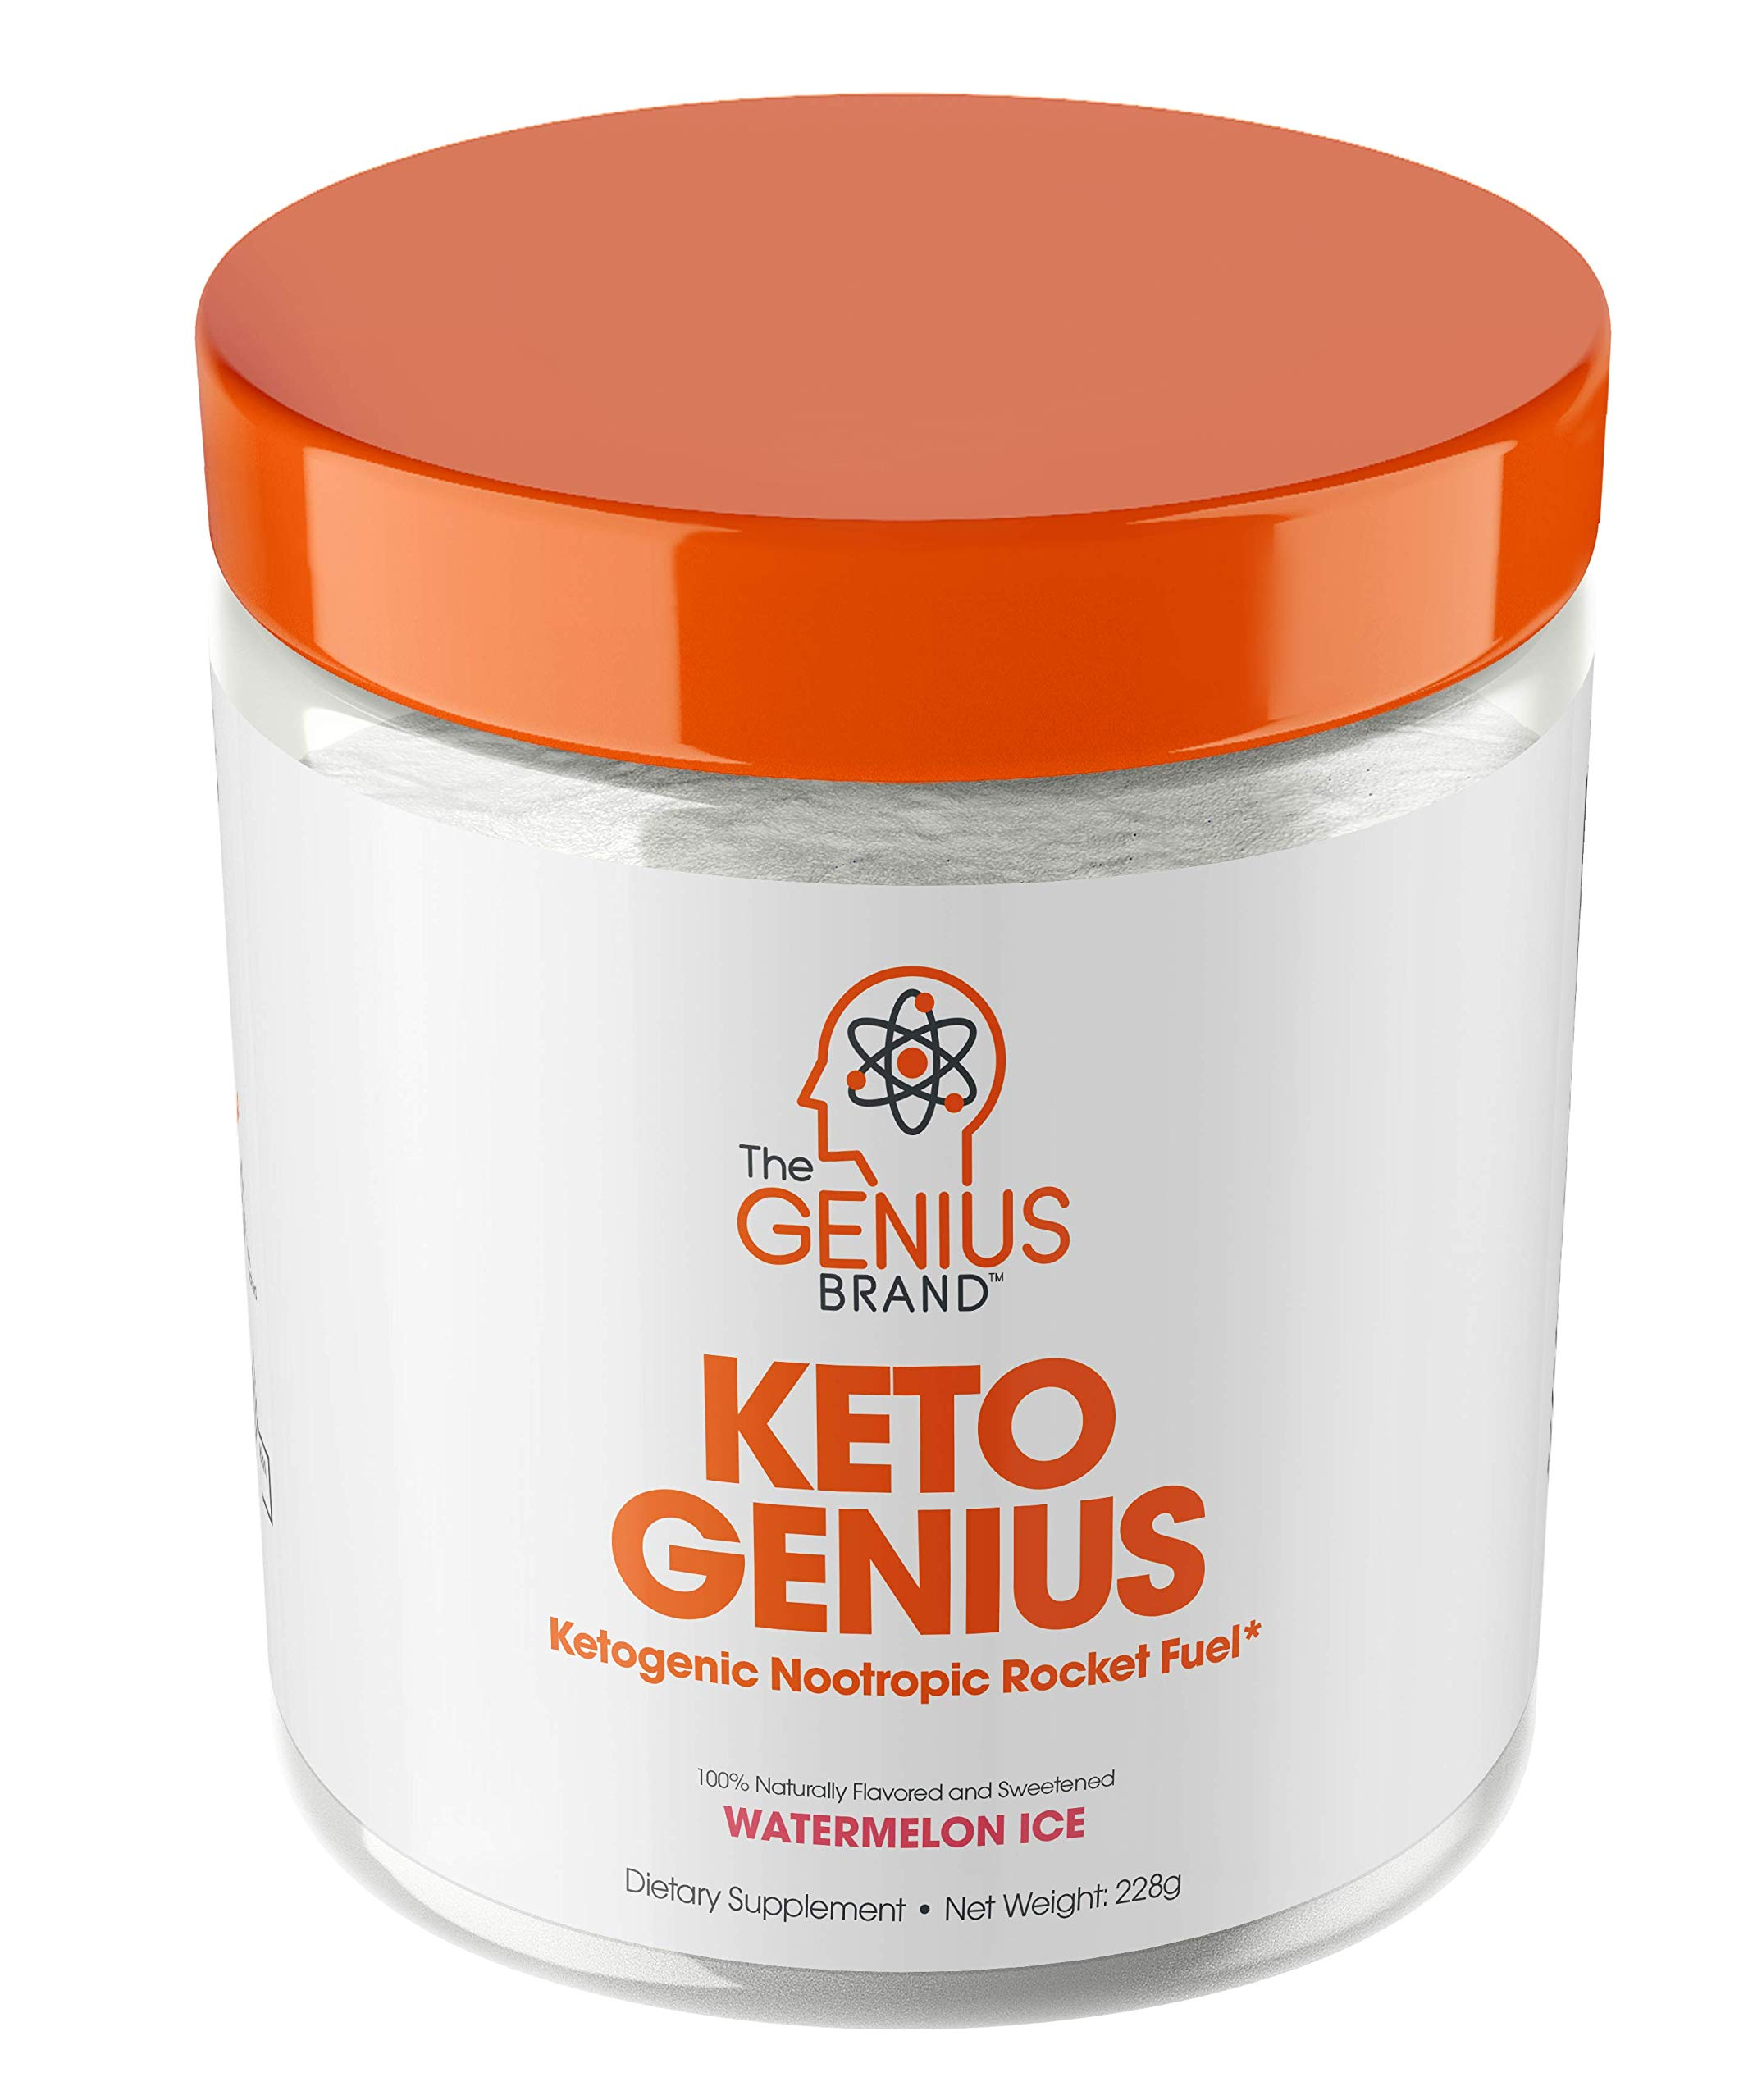 Keto Genius (BHB Exogenous Ketones + Nootropics) – Ketogenic Energy & Focus Supplement - Perfect Nootropic Brain Fuel to Spark Ketosis & Boost Clarity – Pure Ketone Drink Powder w/Alpha GPC –15sv